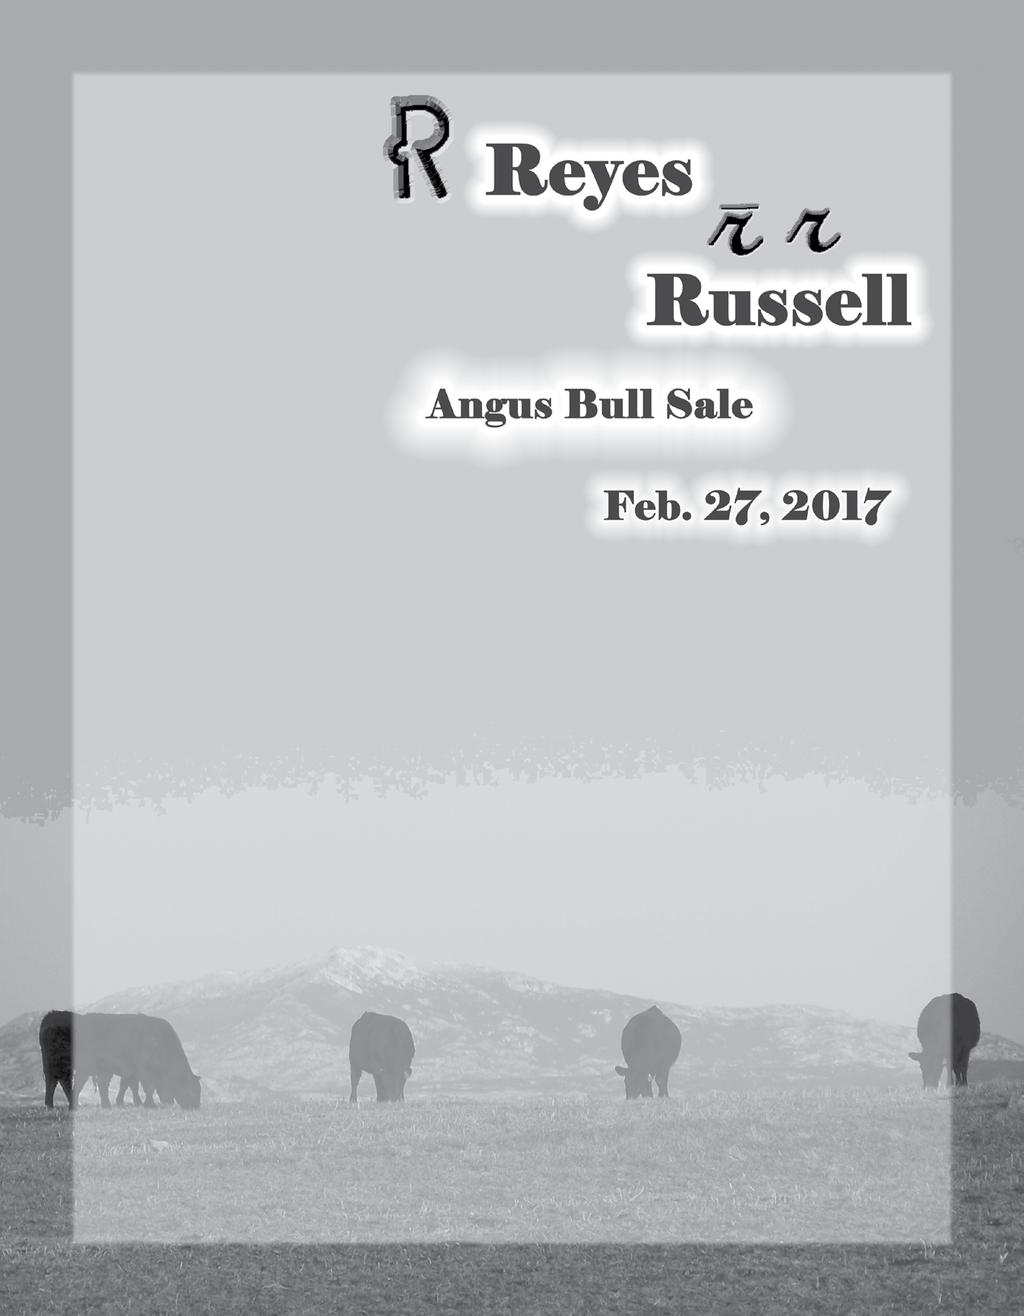 General Information: Sale Location: Sale will be held at the Reyes Ranch located 6 miles south of Wheatland on I-25, take Exit 73 west 1.5 miles to junction 312, then one mile north to MR Angus Ranch.